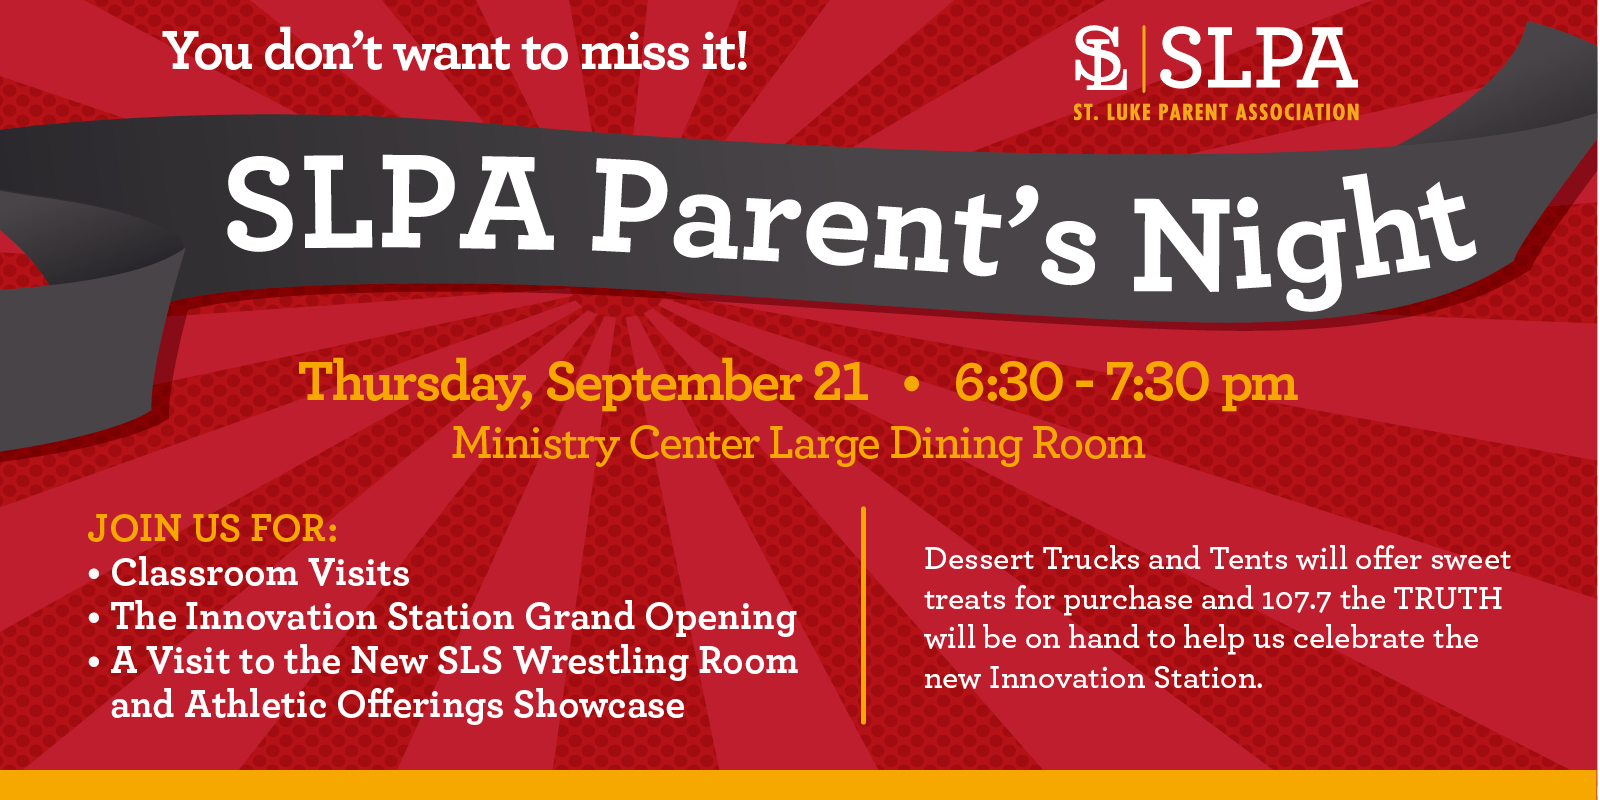 It's Time for Parents' Night!